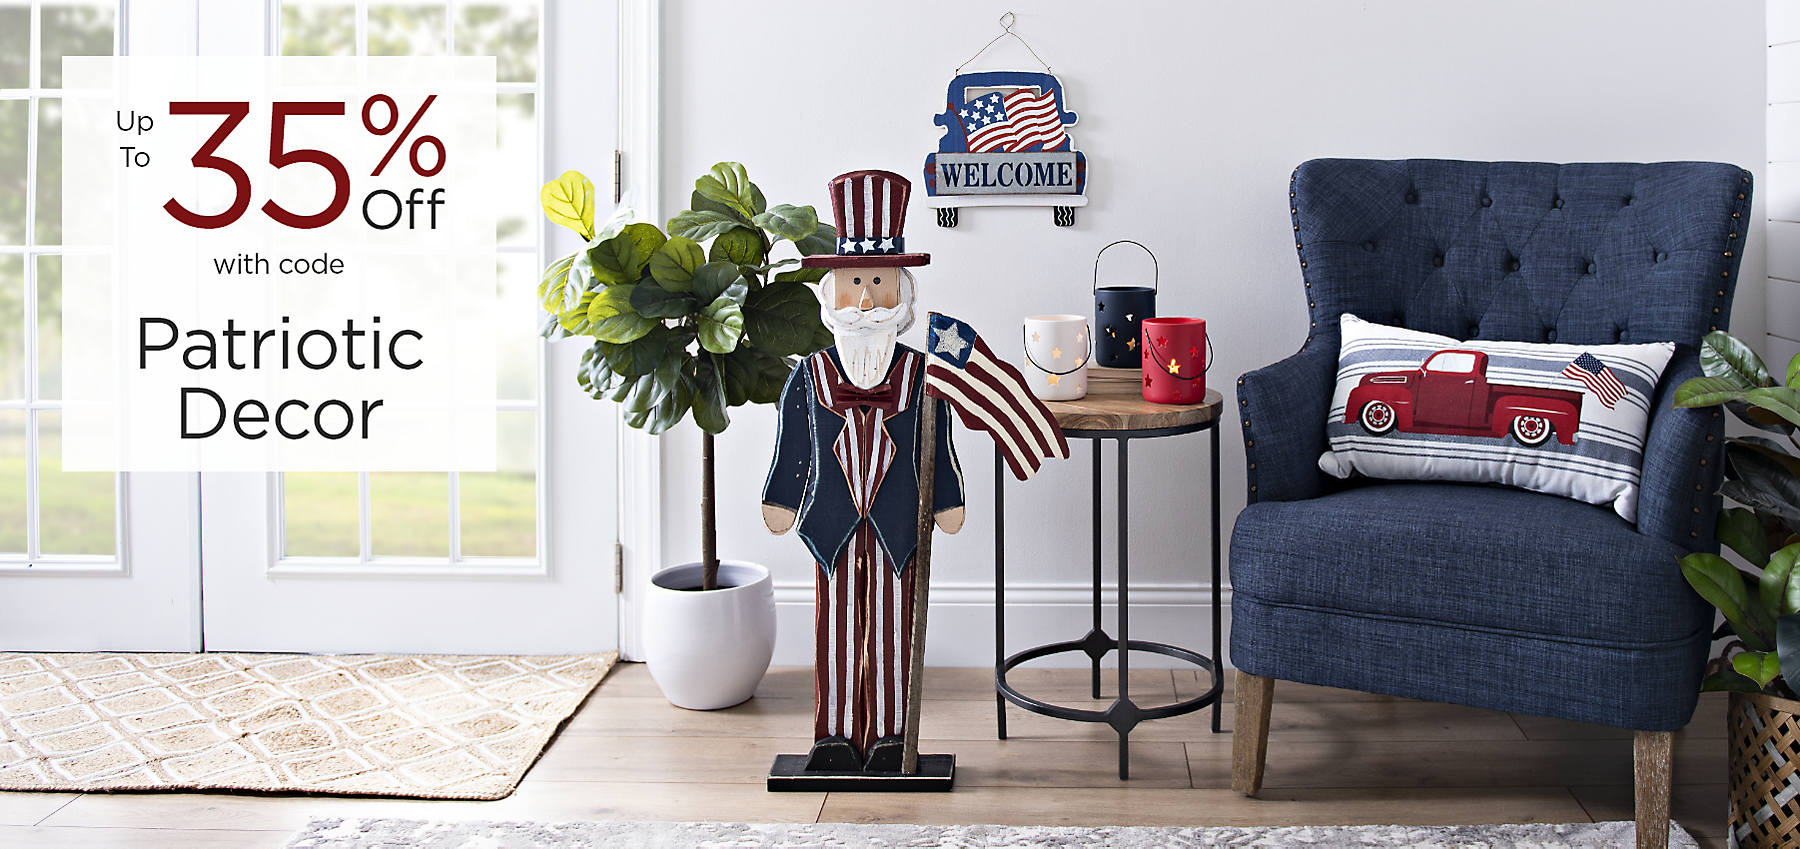 Patriotic Decor Up to 35% Off with code